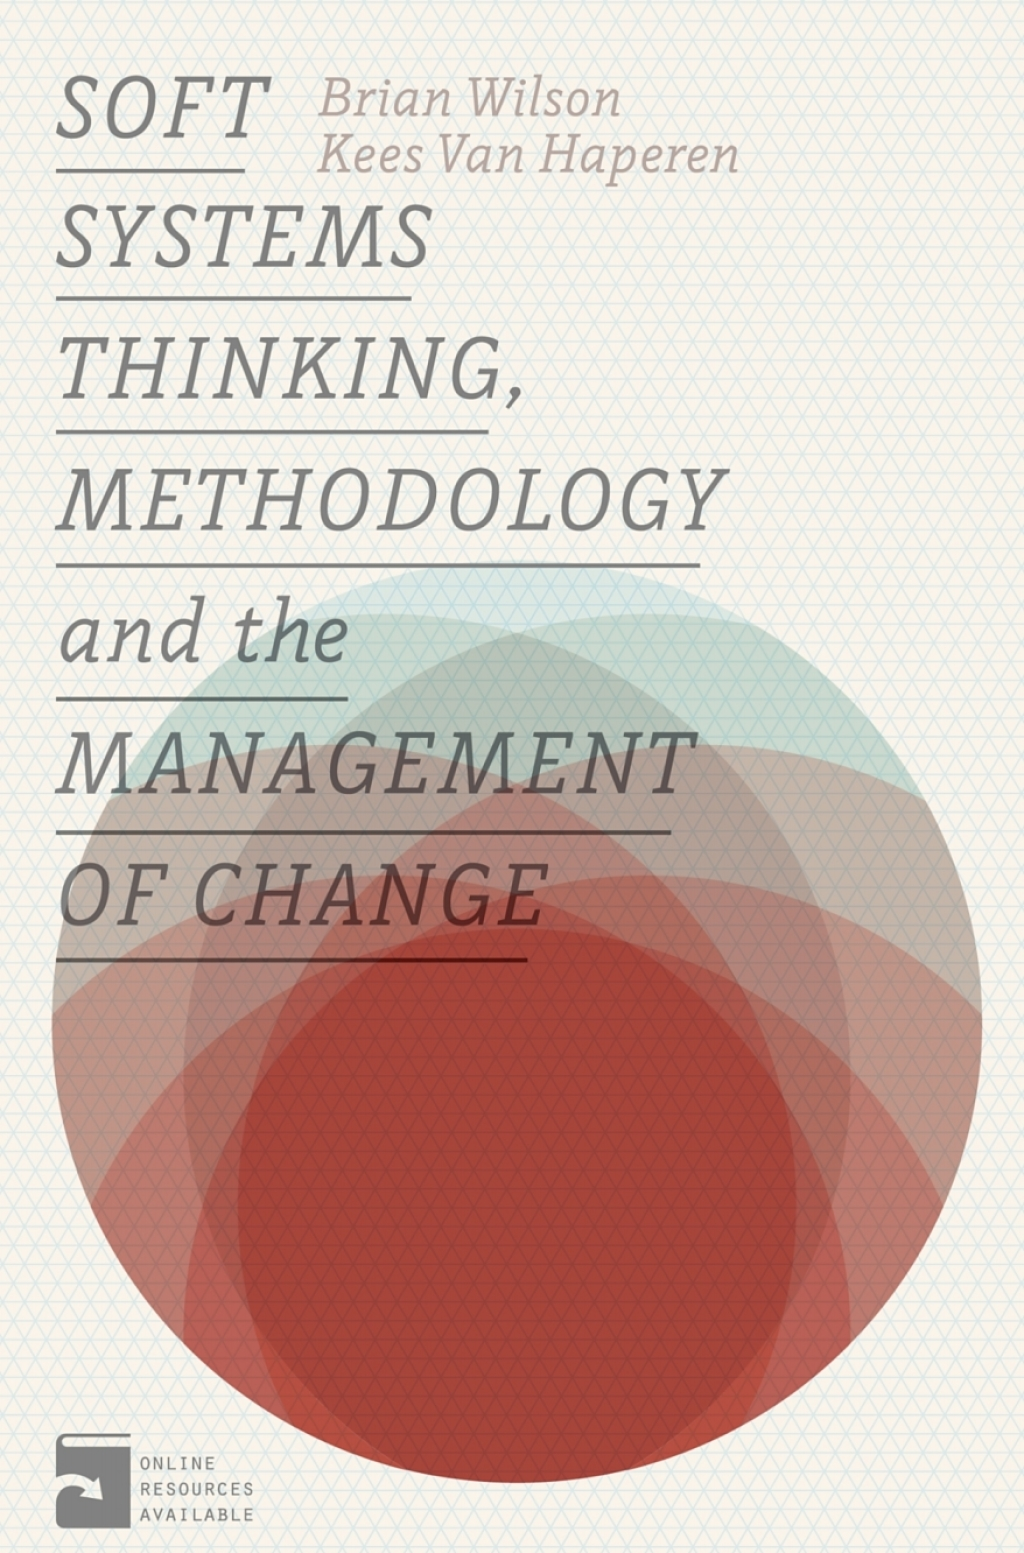 Soft Systems Thinking, Methodology and the Management of Change (ebook) eBooks